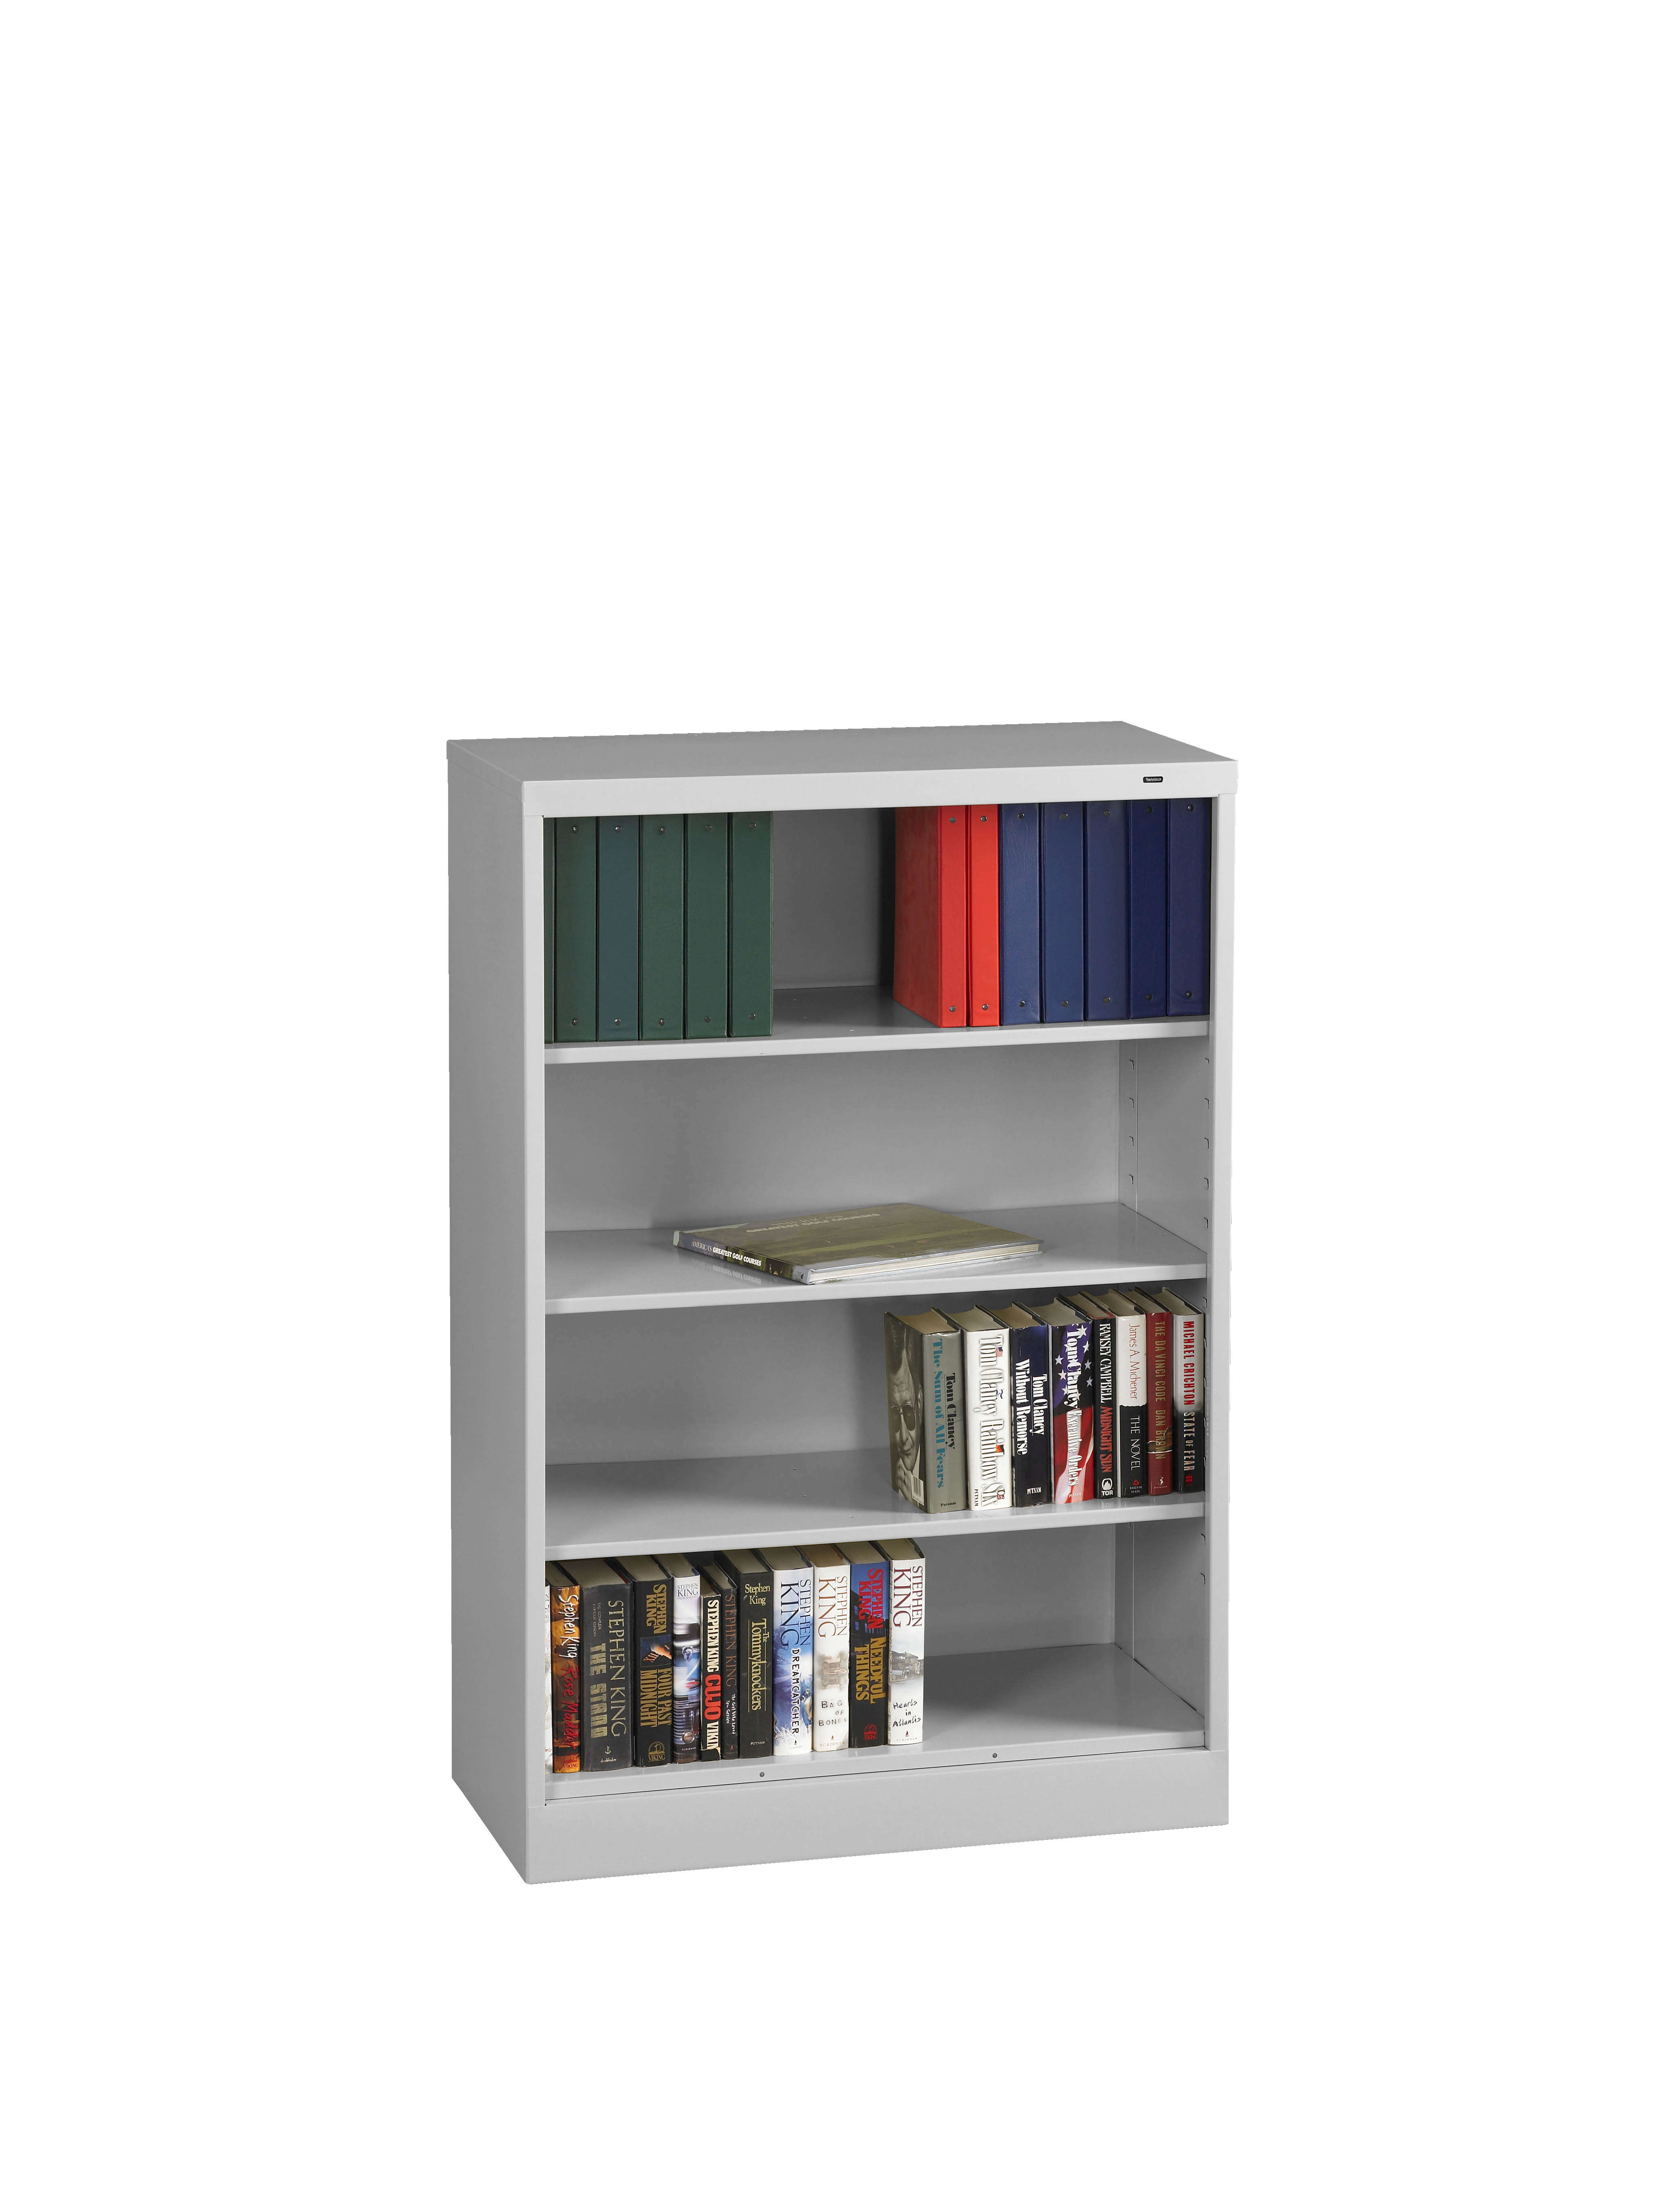 #A62D25 Tennsco Storage Made Easy 18 Deep Welded Bookcase 55 High with 4080x5440 px of Recommended Deep Shelves Bookcase 54404080 save image @ avoidforclosure.info